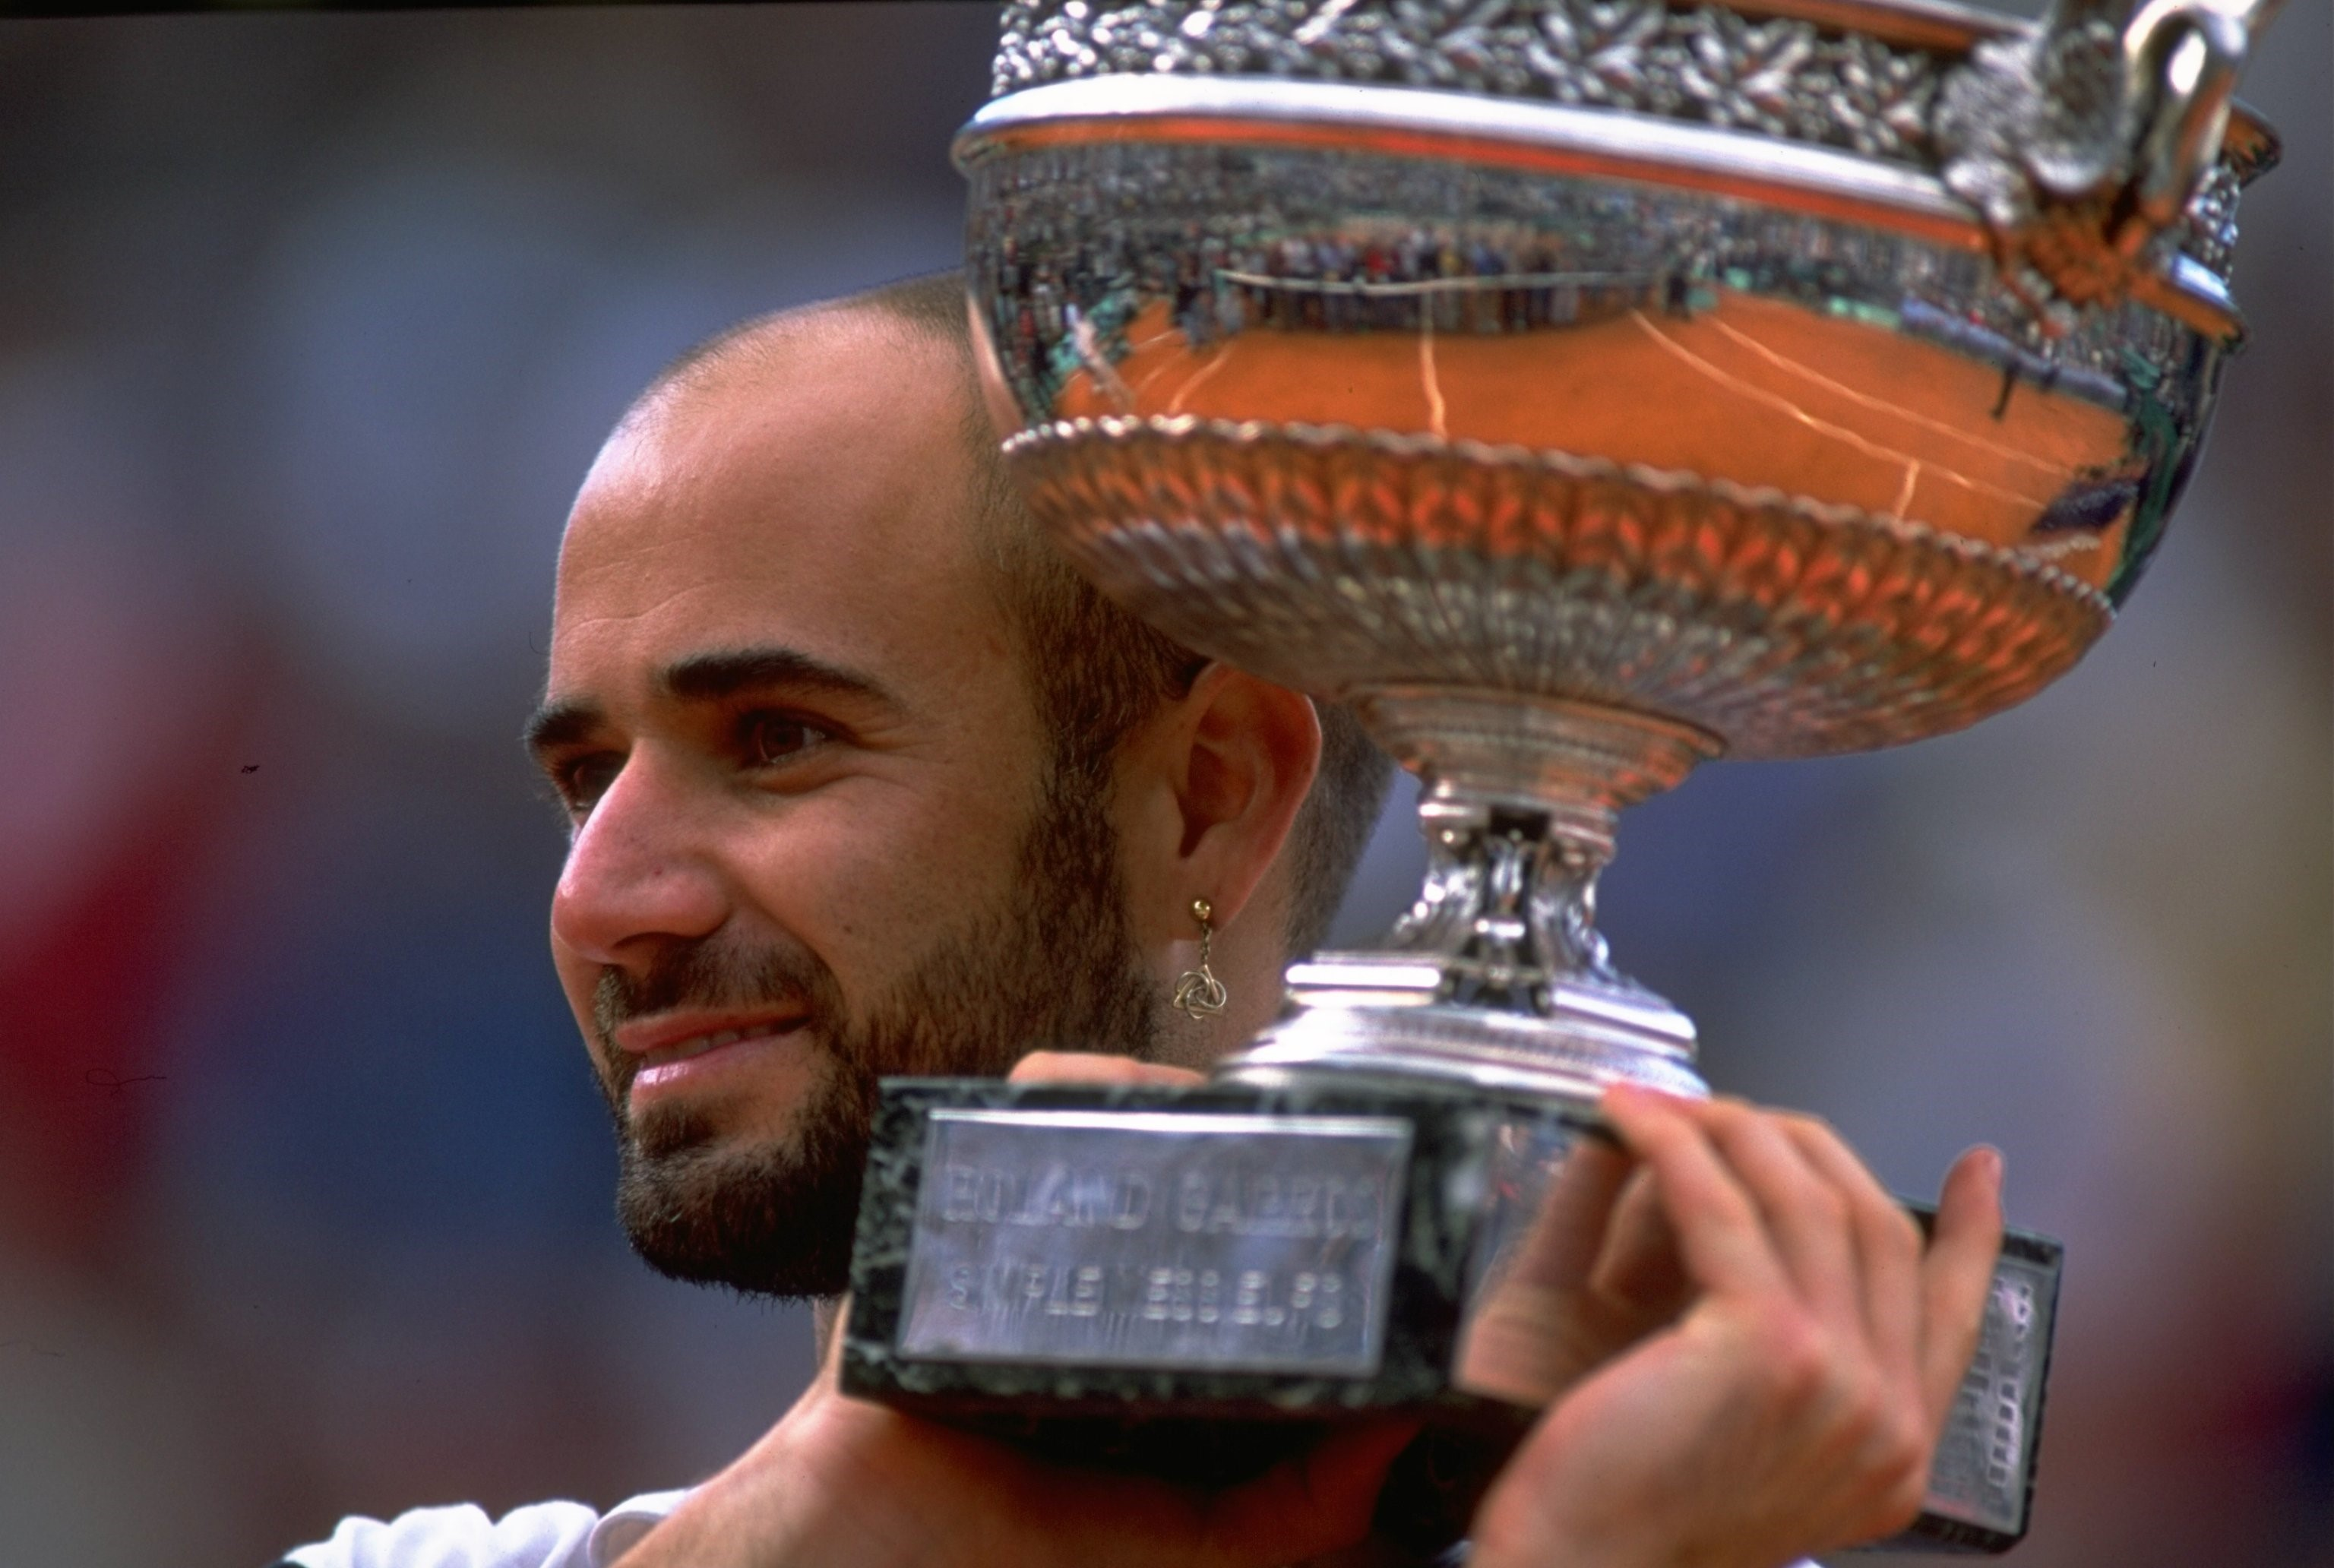 Andre Agassi with the Roland Garros 1999 trophy